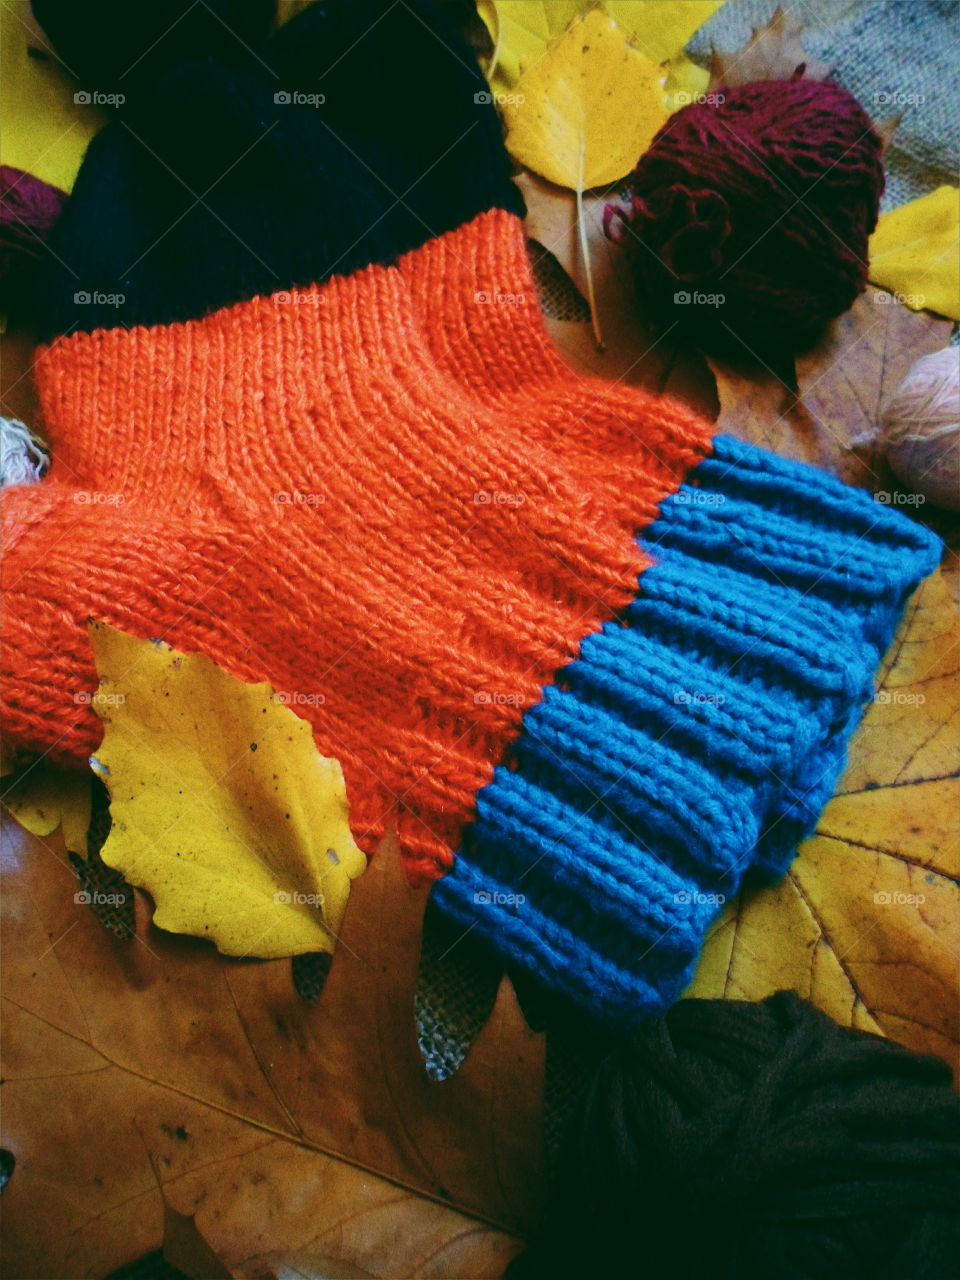 knitted warm socks and autumn leaves